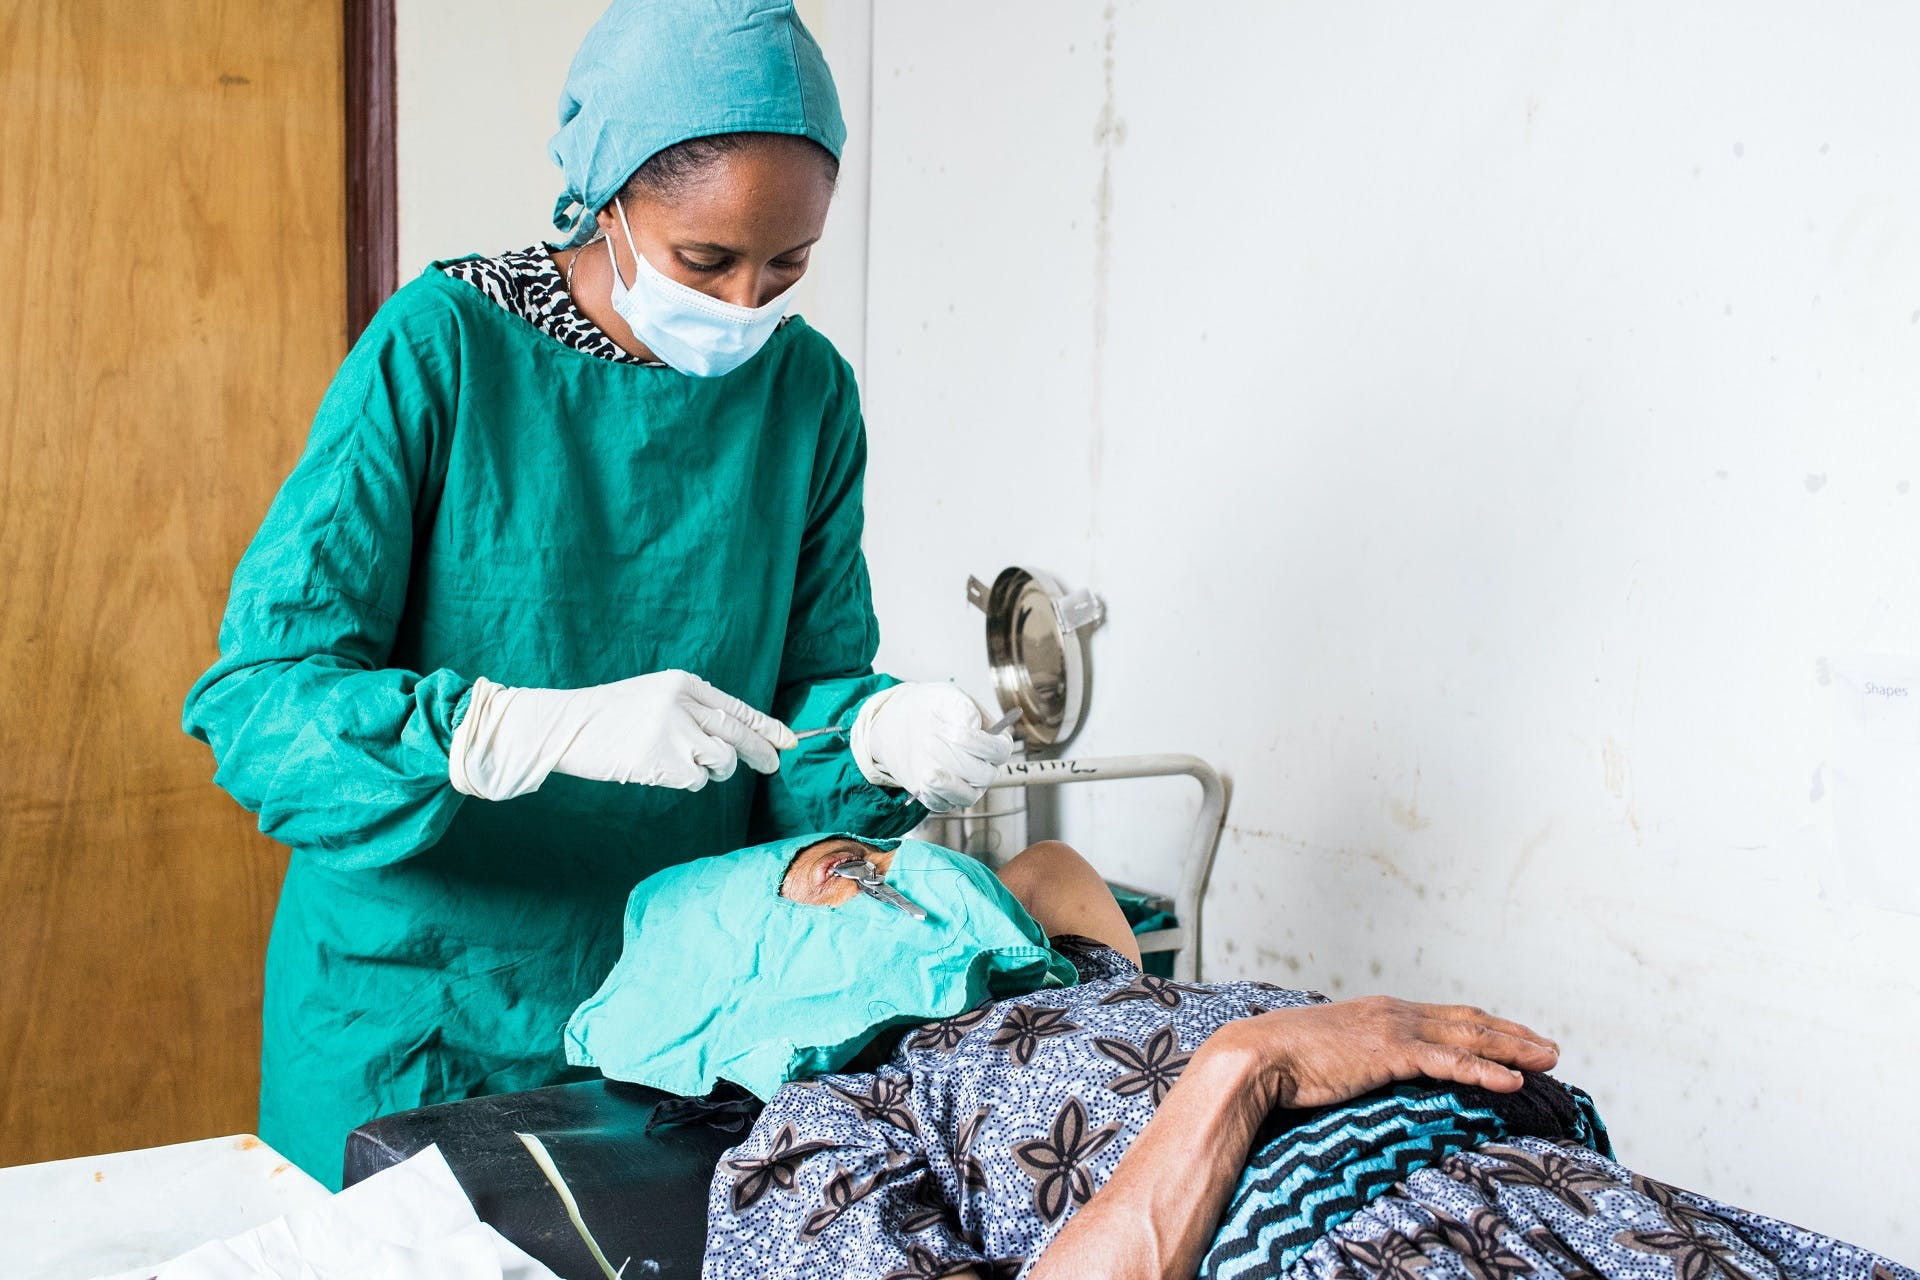 Belay Bonger being treated by an Orbis-trained health worker